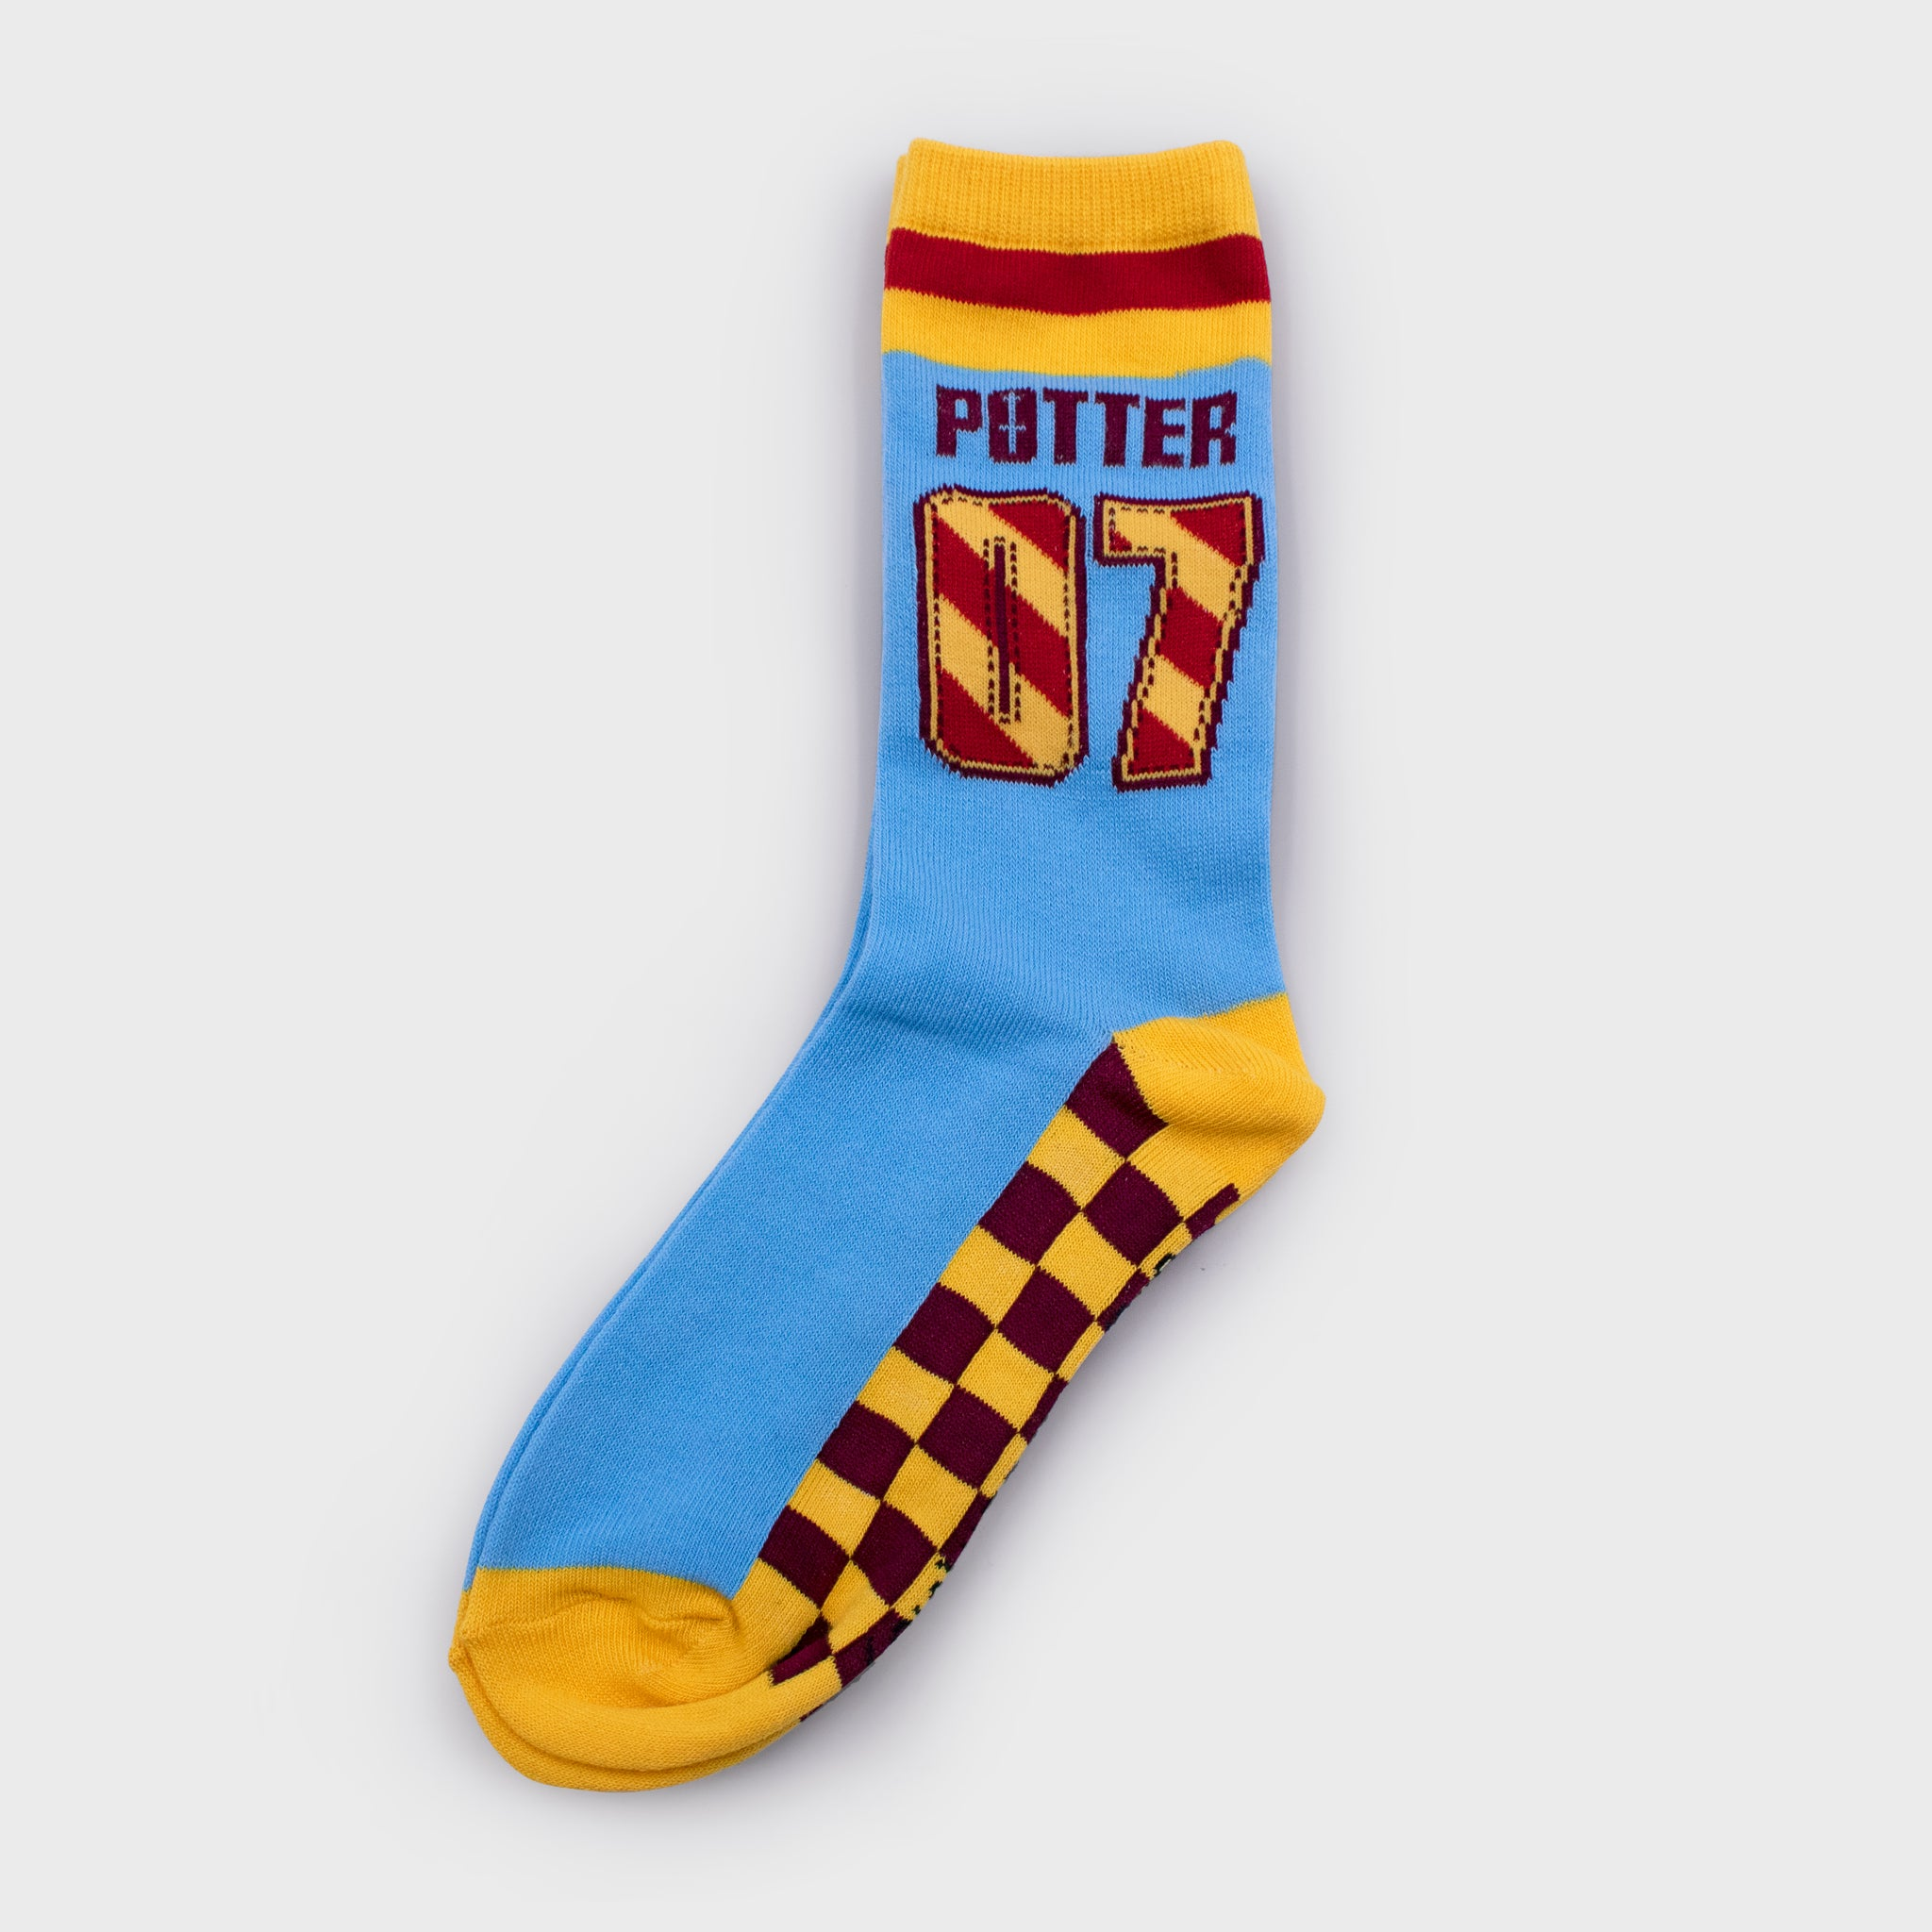 harry potter wizarding world quidditch warner brothers walmart retail box collectibles home good accessories exclusive culturefly socks